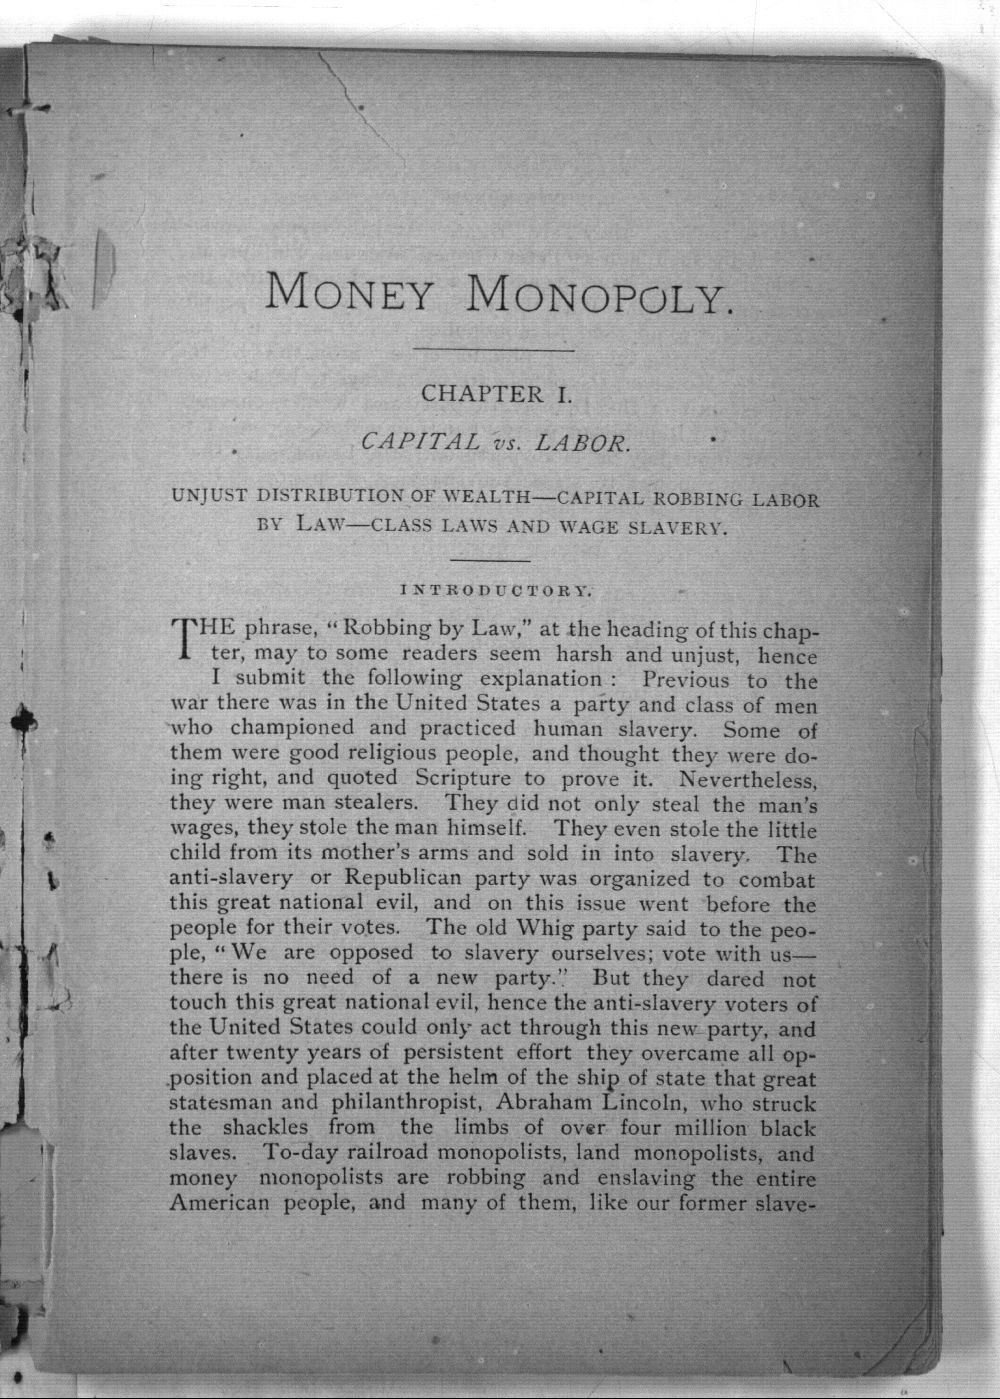 The money monopoly.  Scarce and dear money (hard money) making cheap labor, or wage slavery, falling prices business paralysis, and enforced idleness. - 3